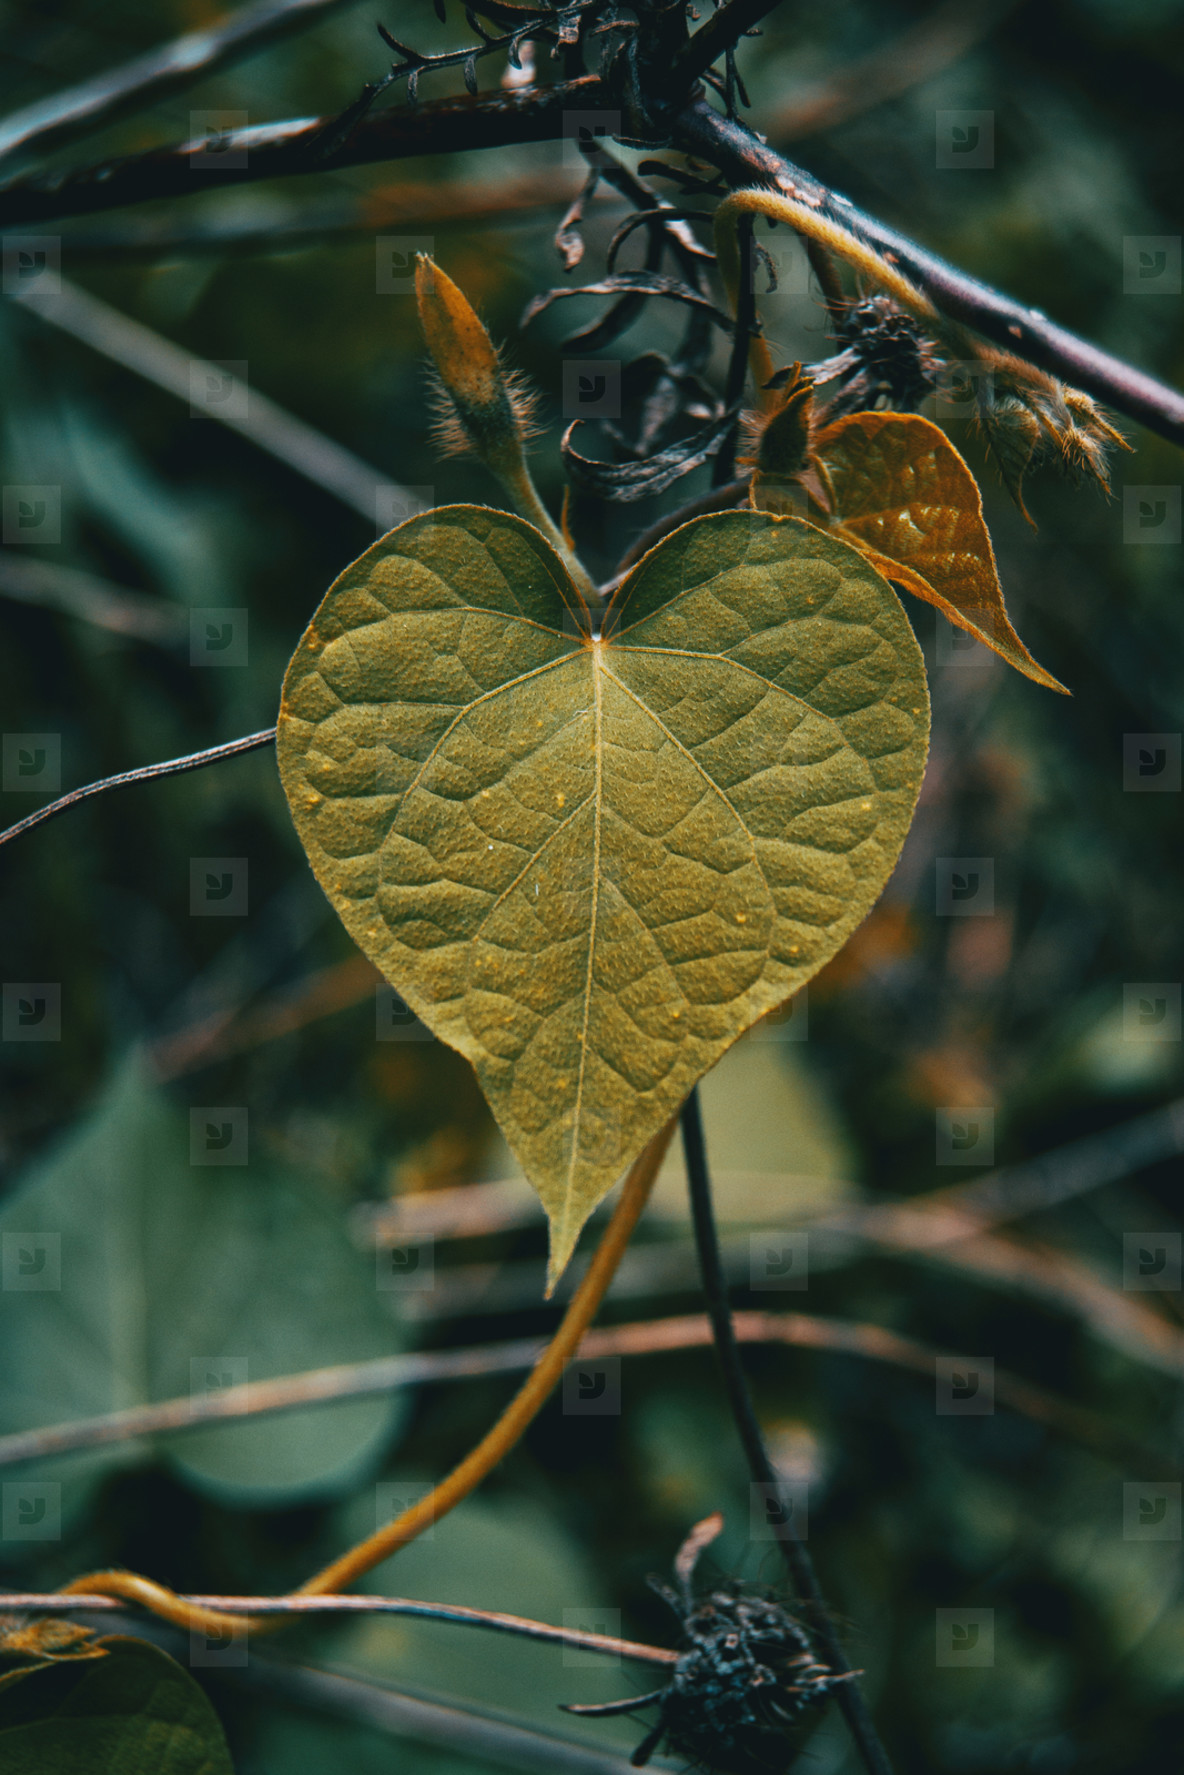 philodendrum leaf with heart shape